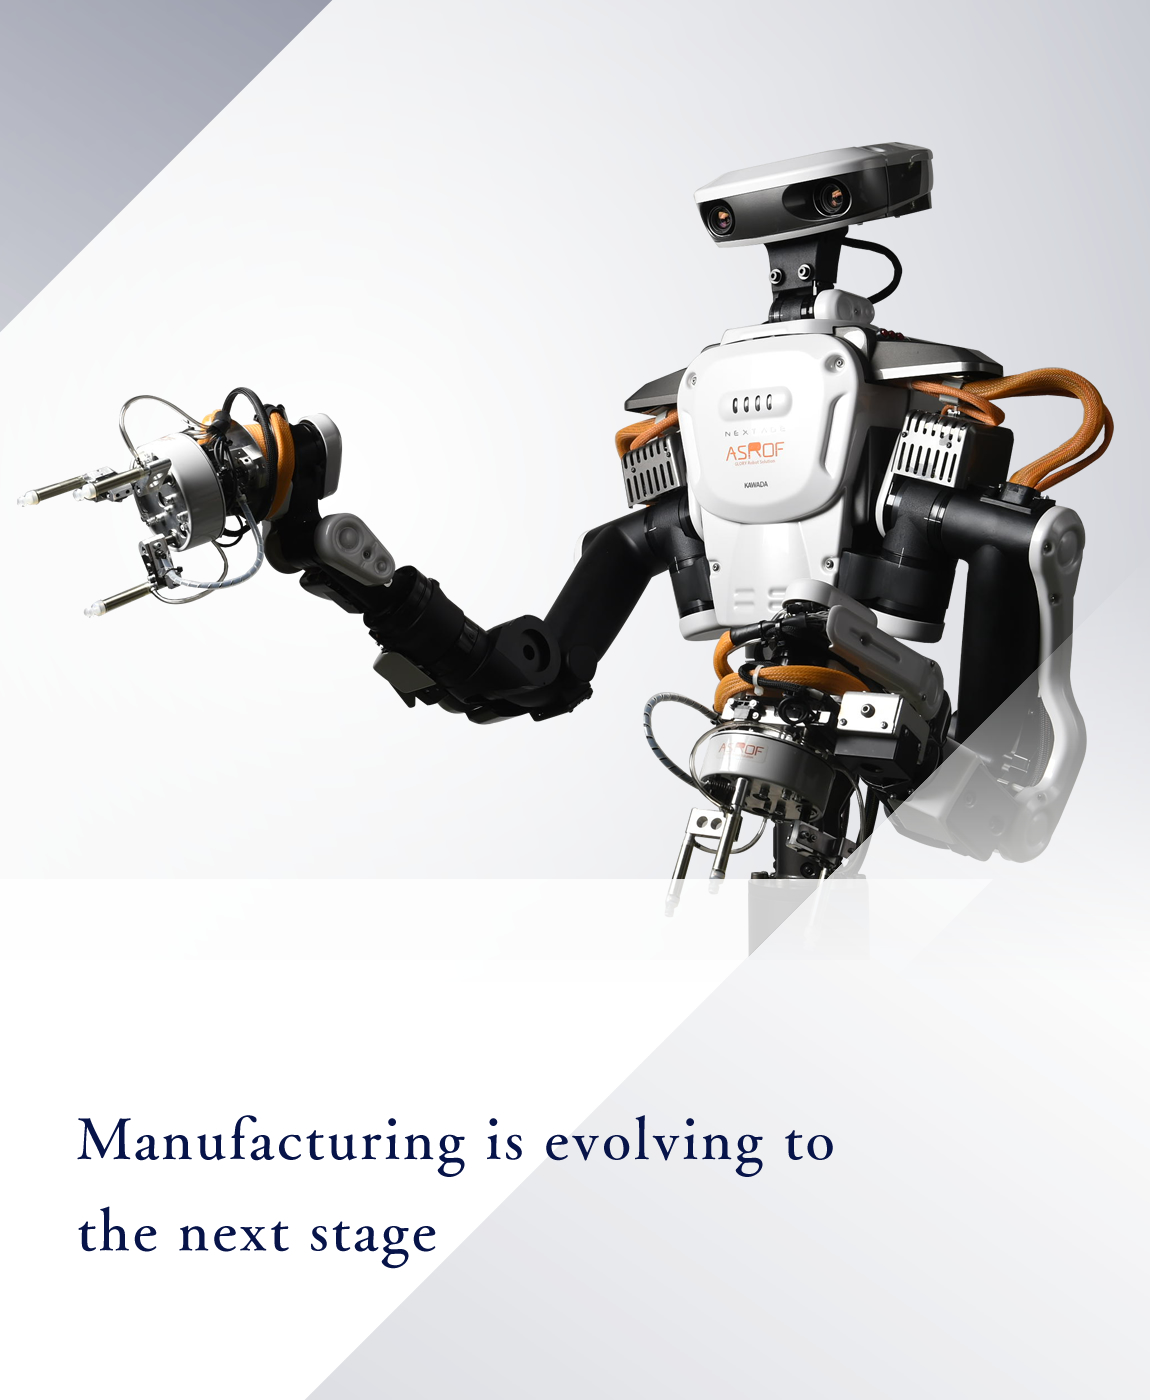 Manufacturing evolving to the next stage